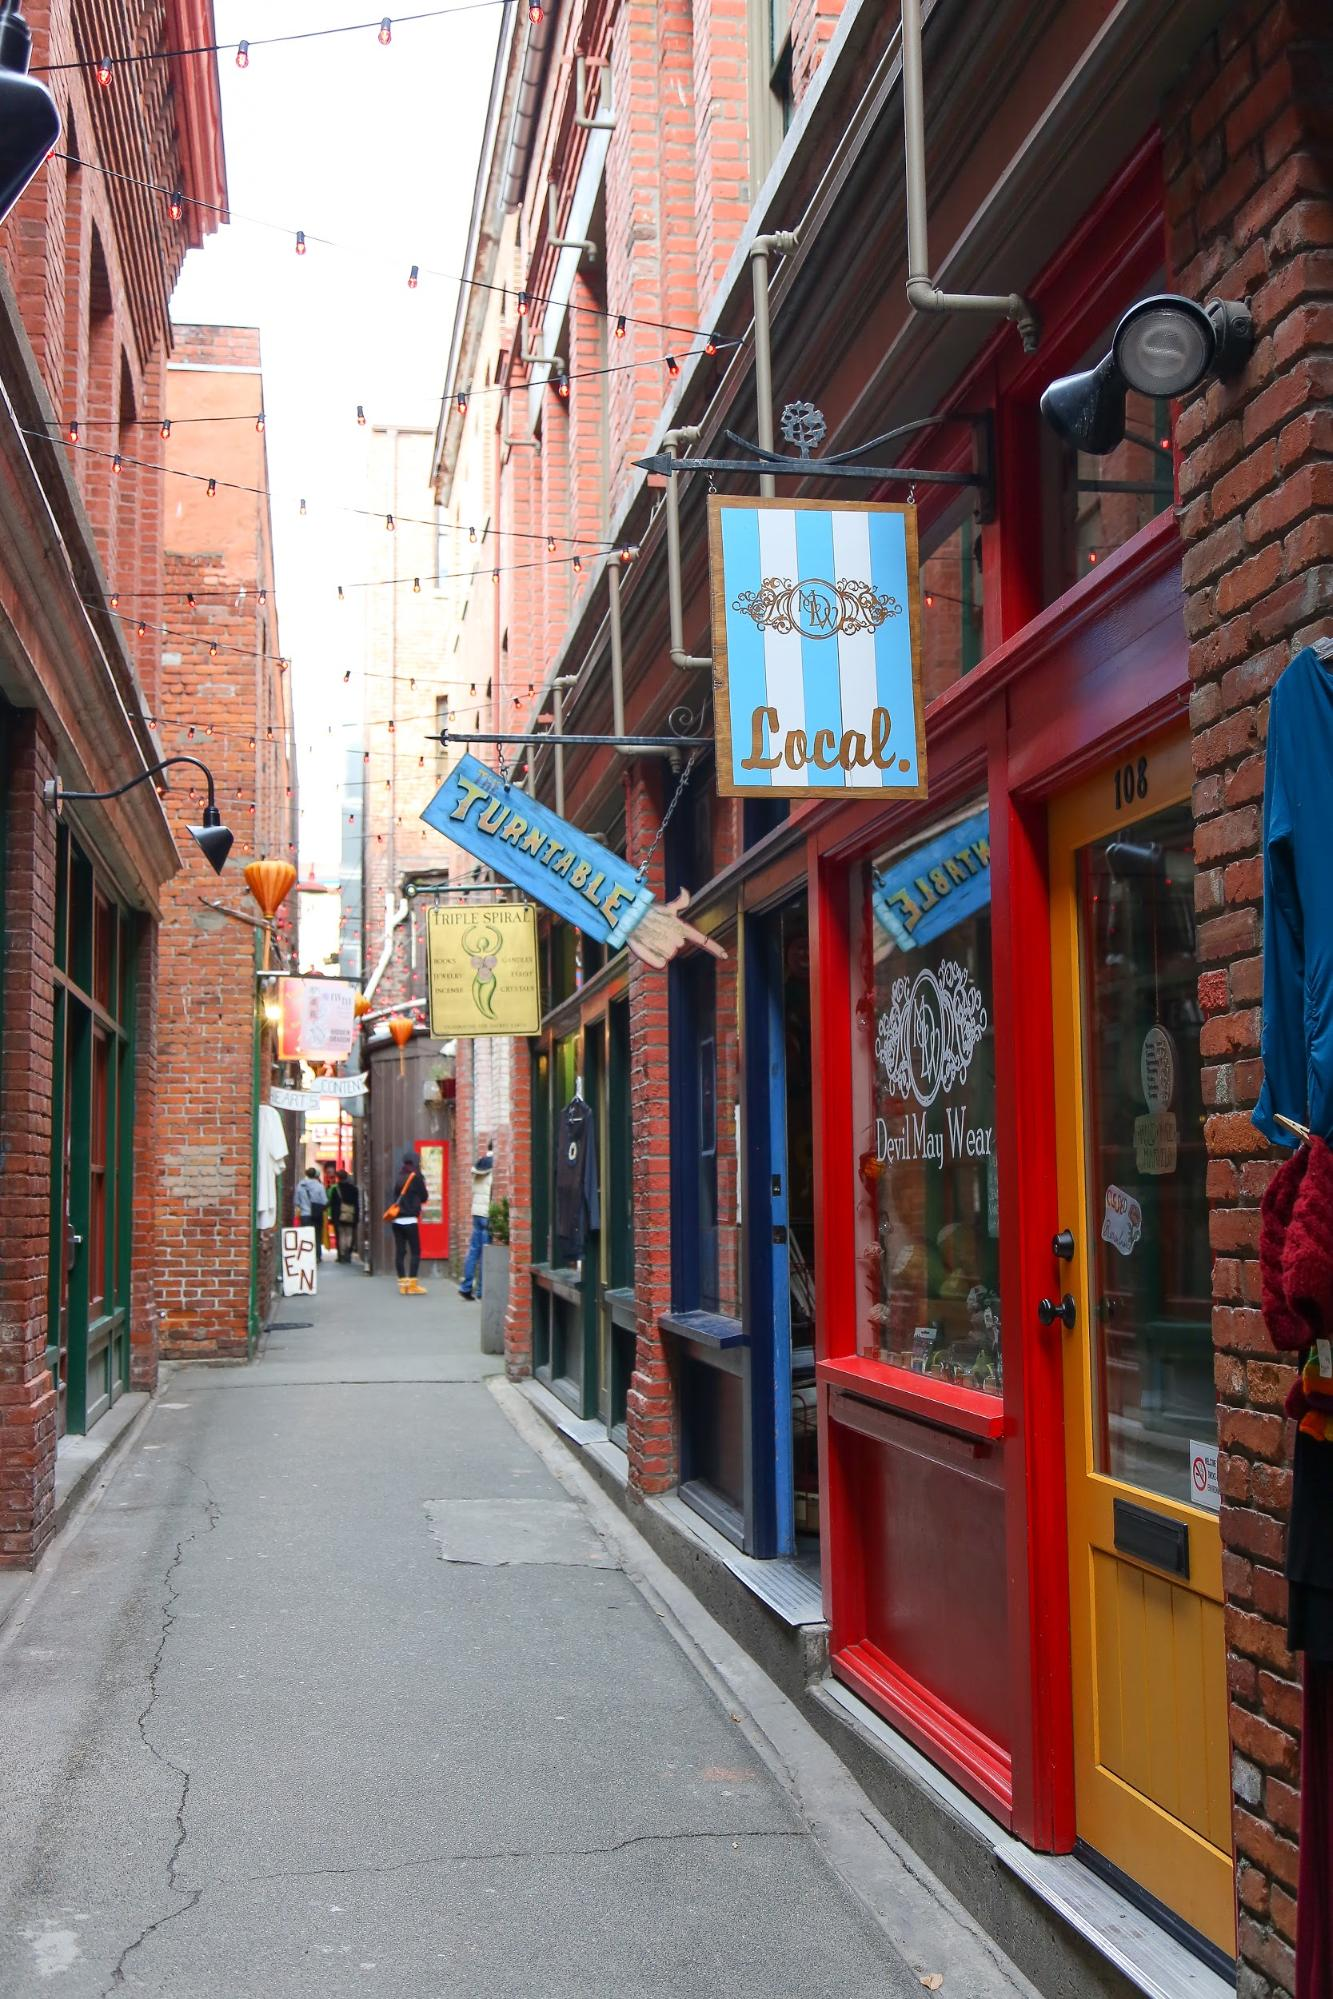 A narrow alleyway lined with colourful shops.